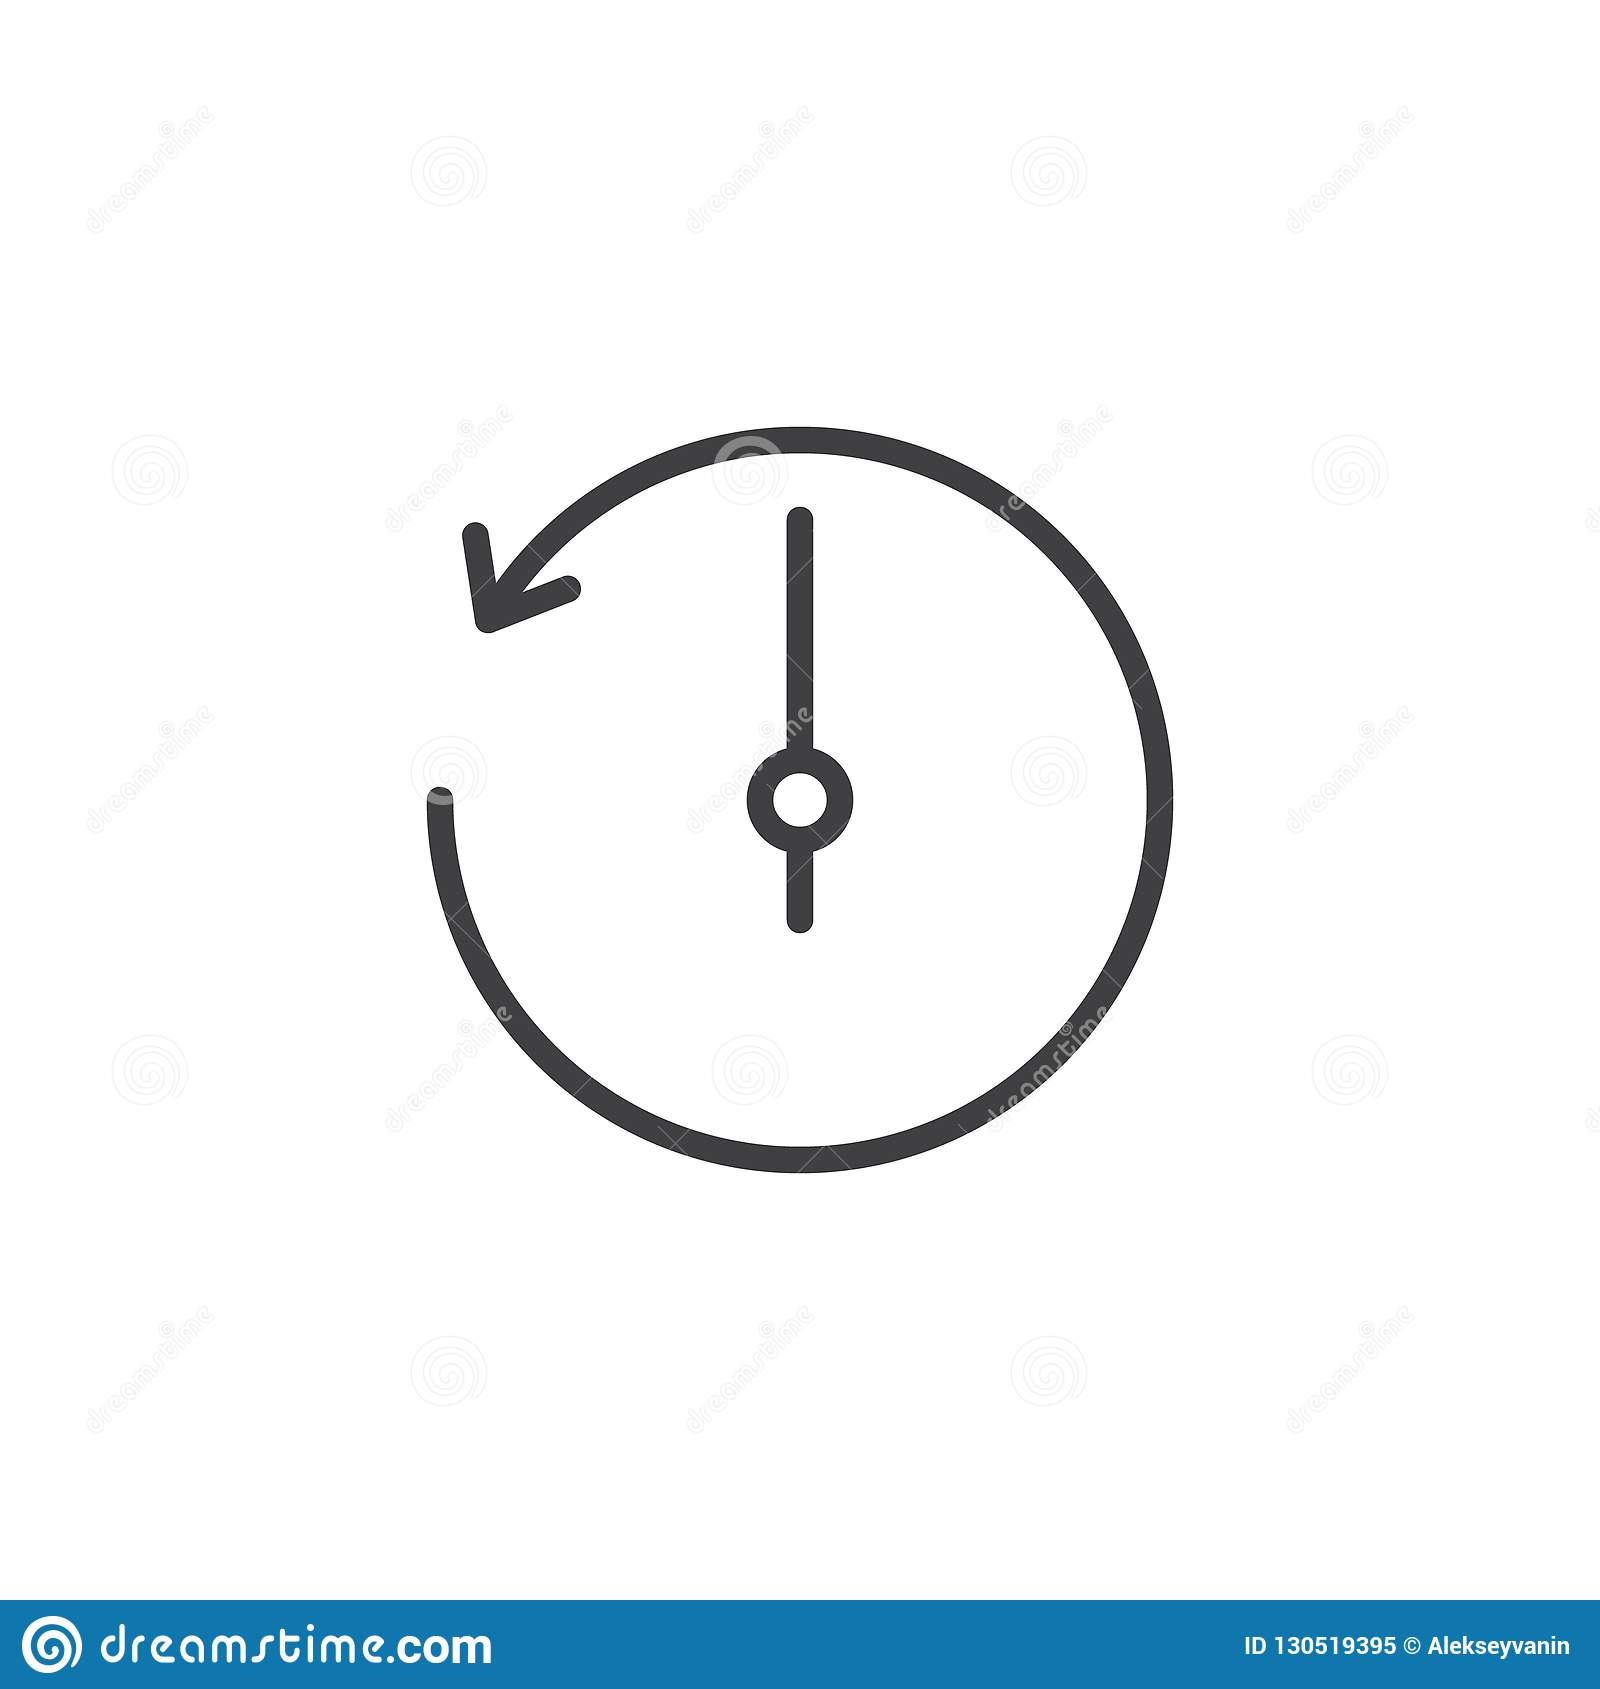 Counterclockwise Rotation Arrow Outline Icon Stock Vector ...